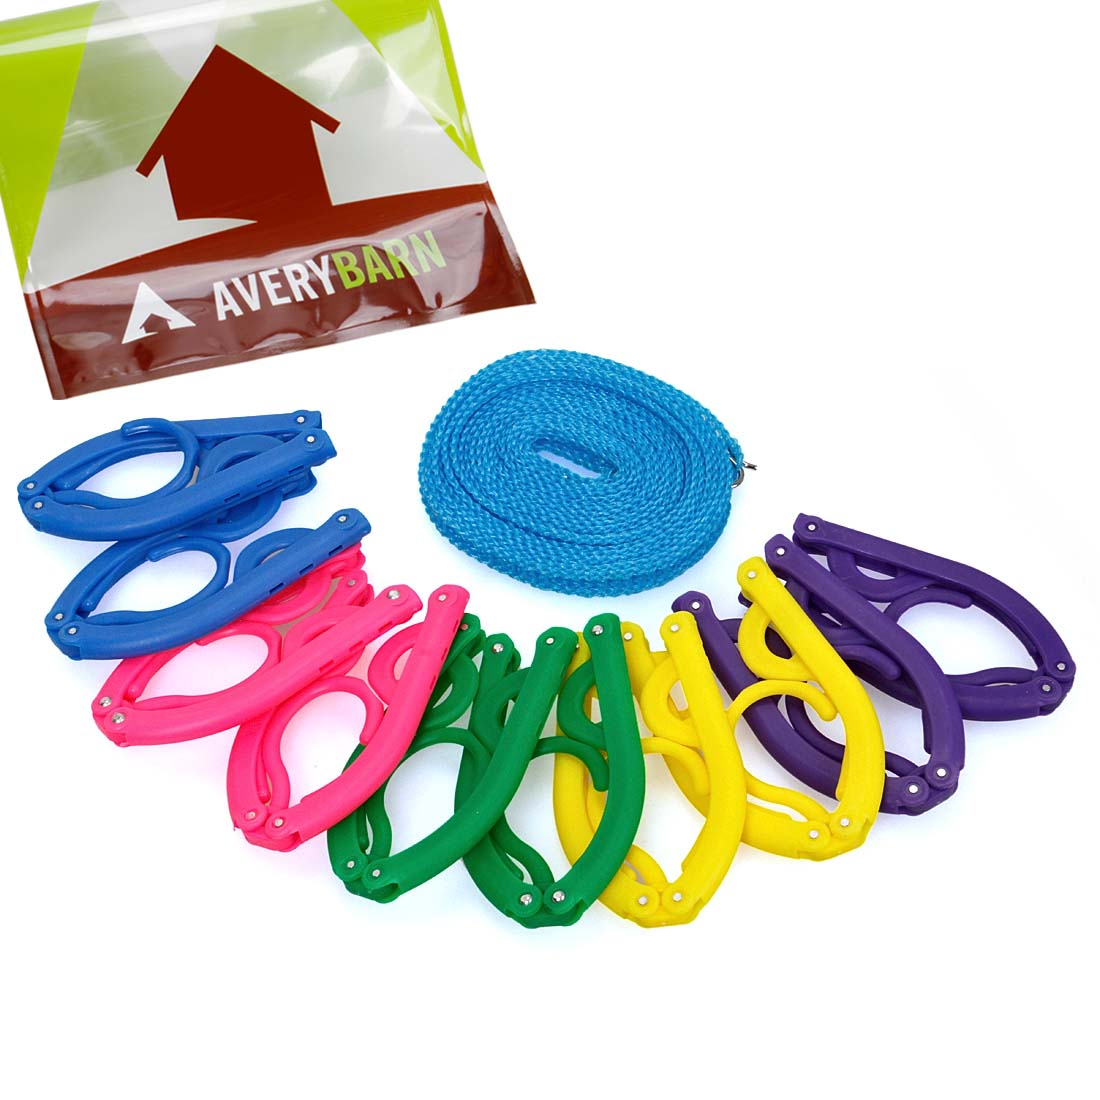 Avery Barn 10pc Multi Color Foldable Hangers With 16ft Outdoor Clothesline Rope